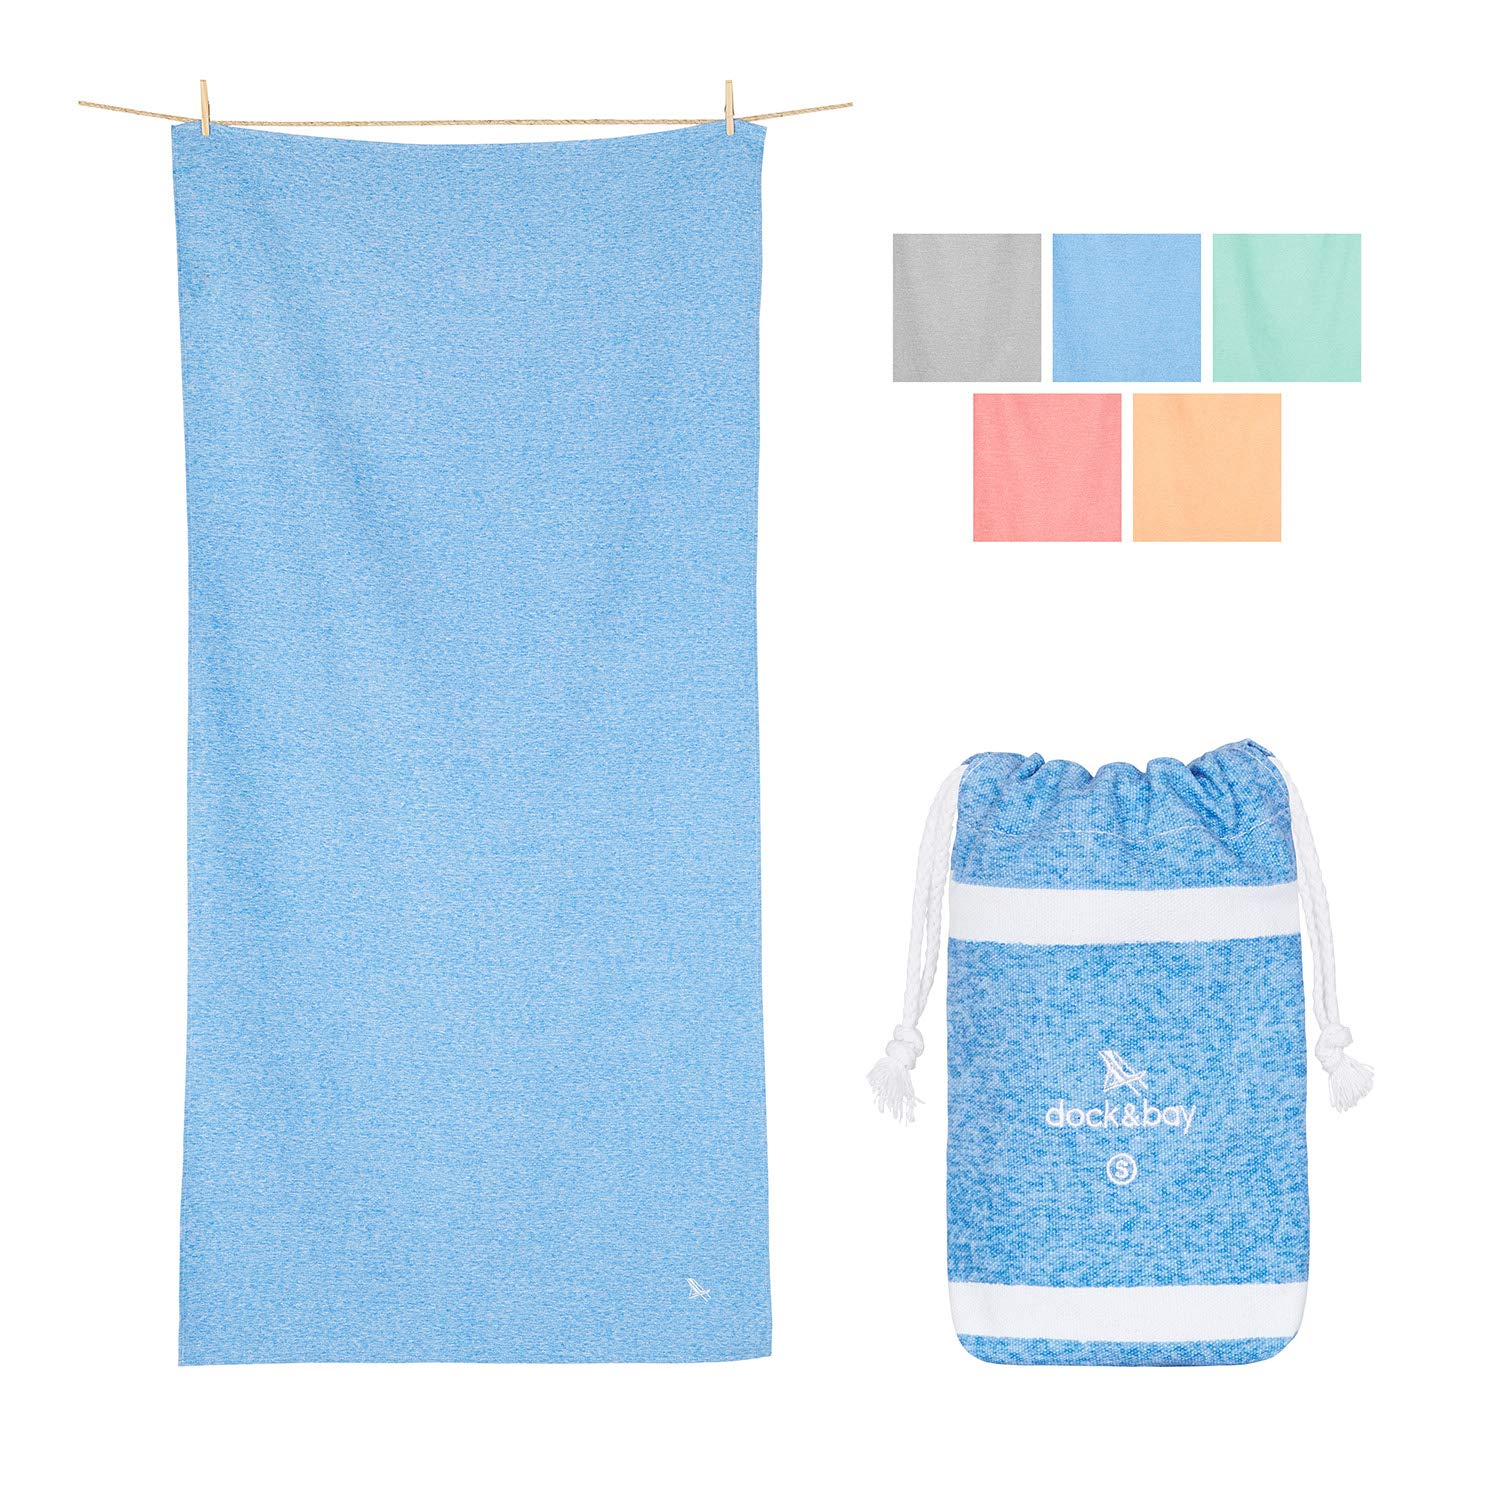 Gym Towels and Workout Towel - Lagoon Blue, 40 x 20 - Gym, Sports & Workout - Compact Gym Towel, Sports Towel